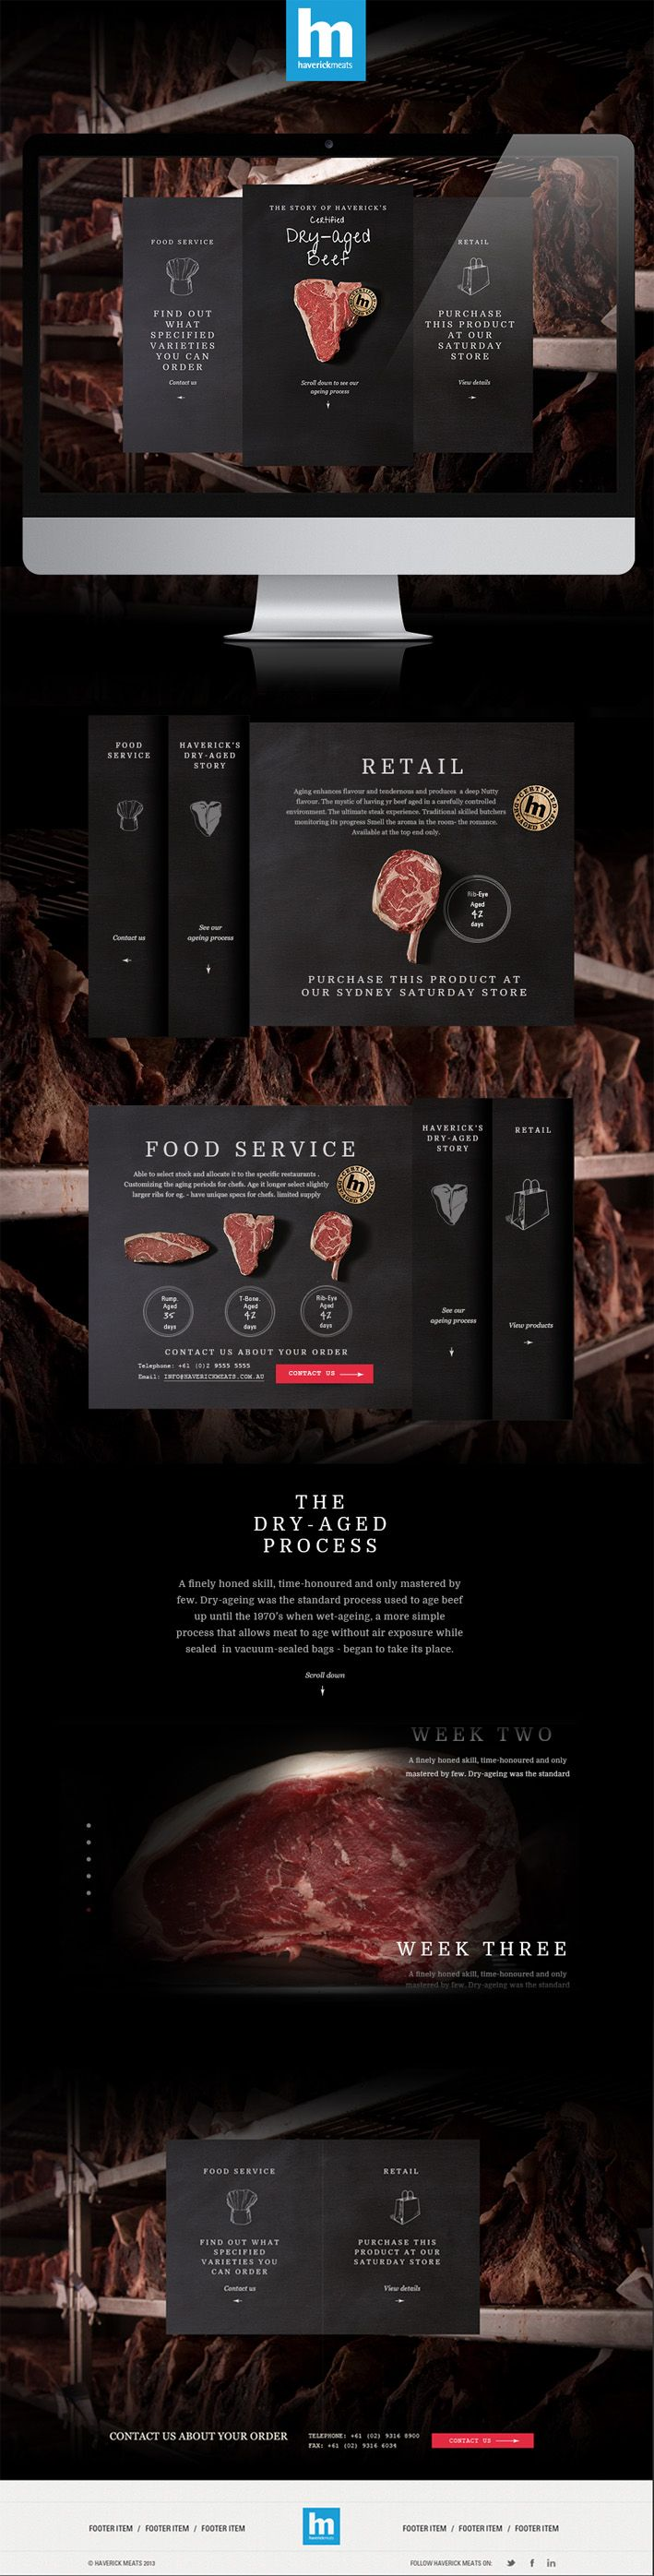 https://www.haverickmeats.com.au/certified-dry-aged-beef/ An industry first…